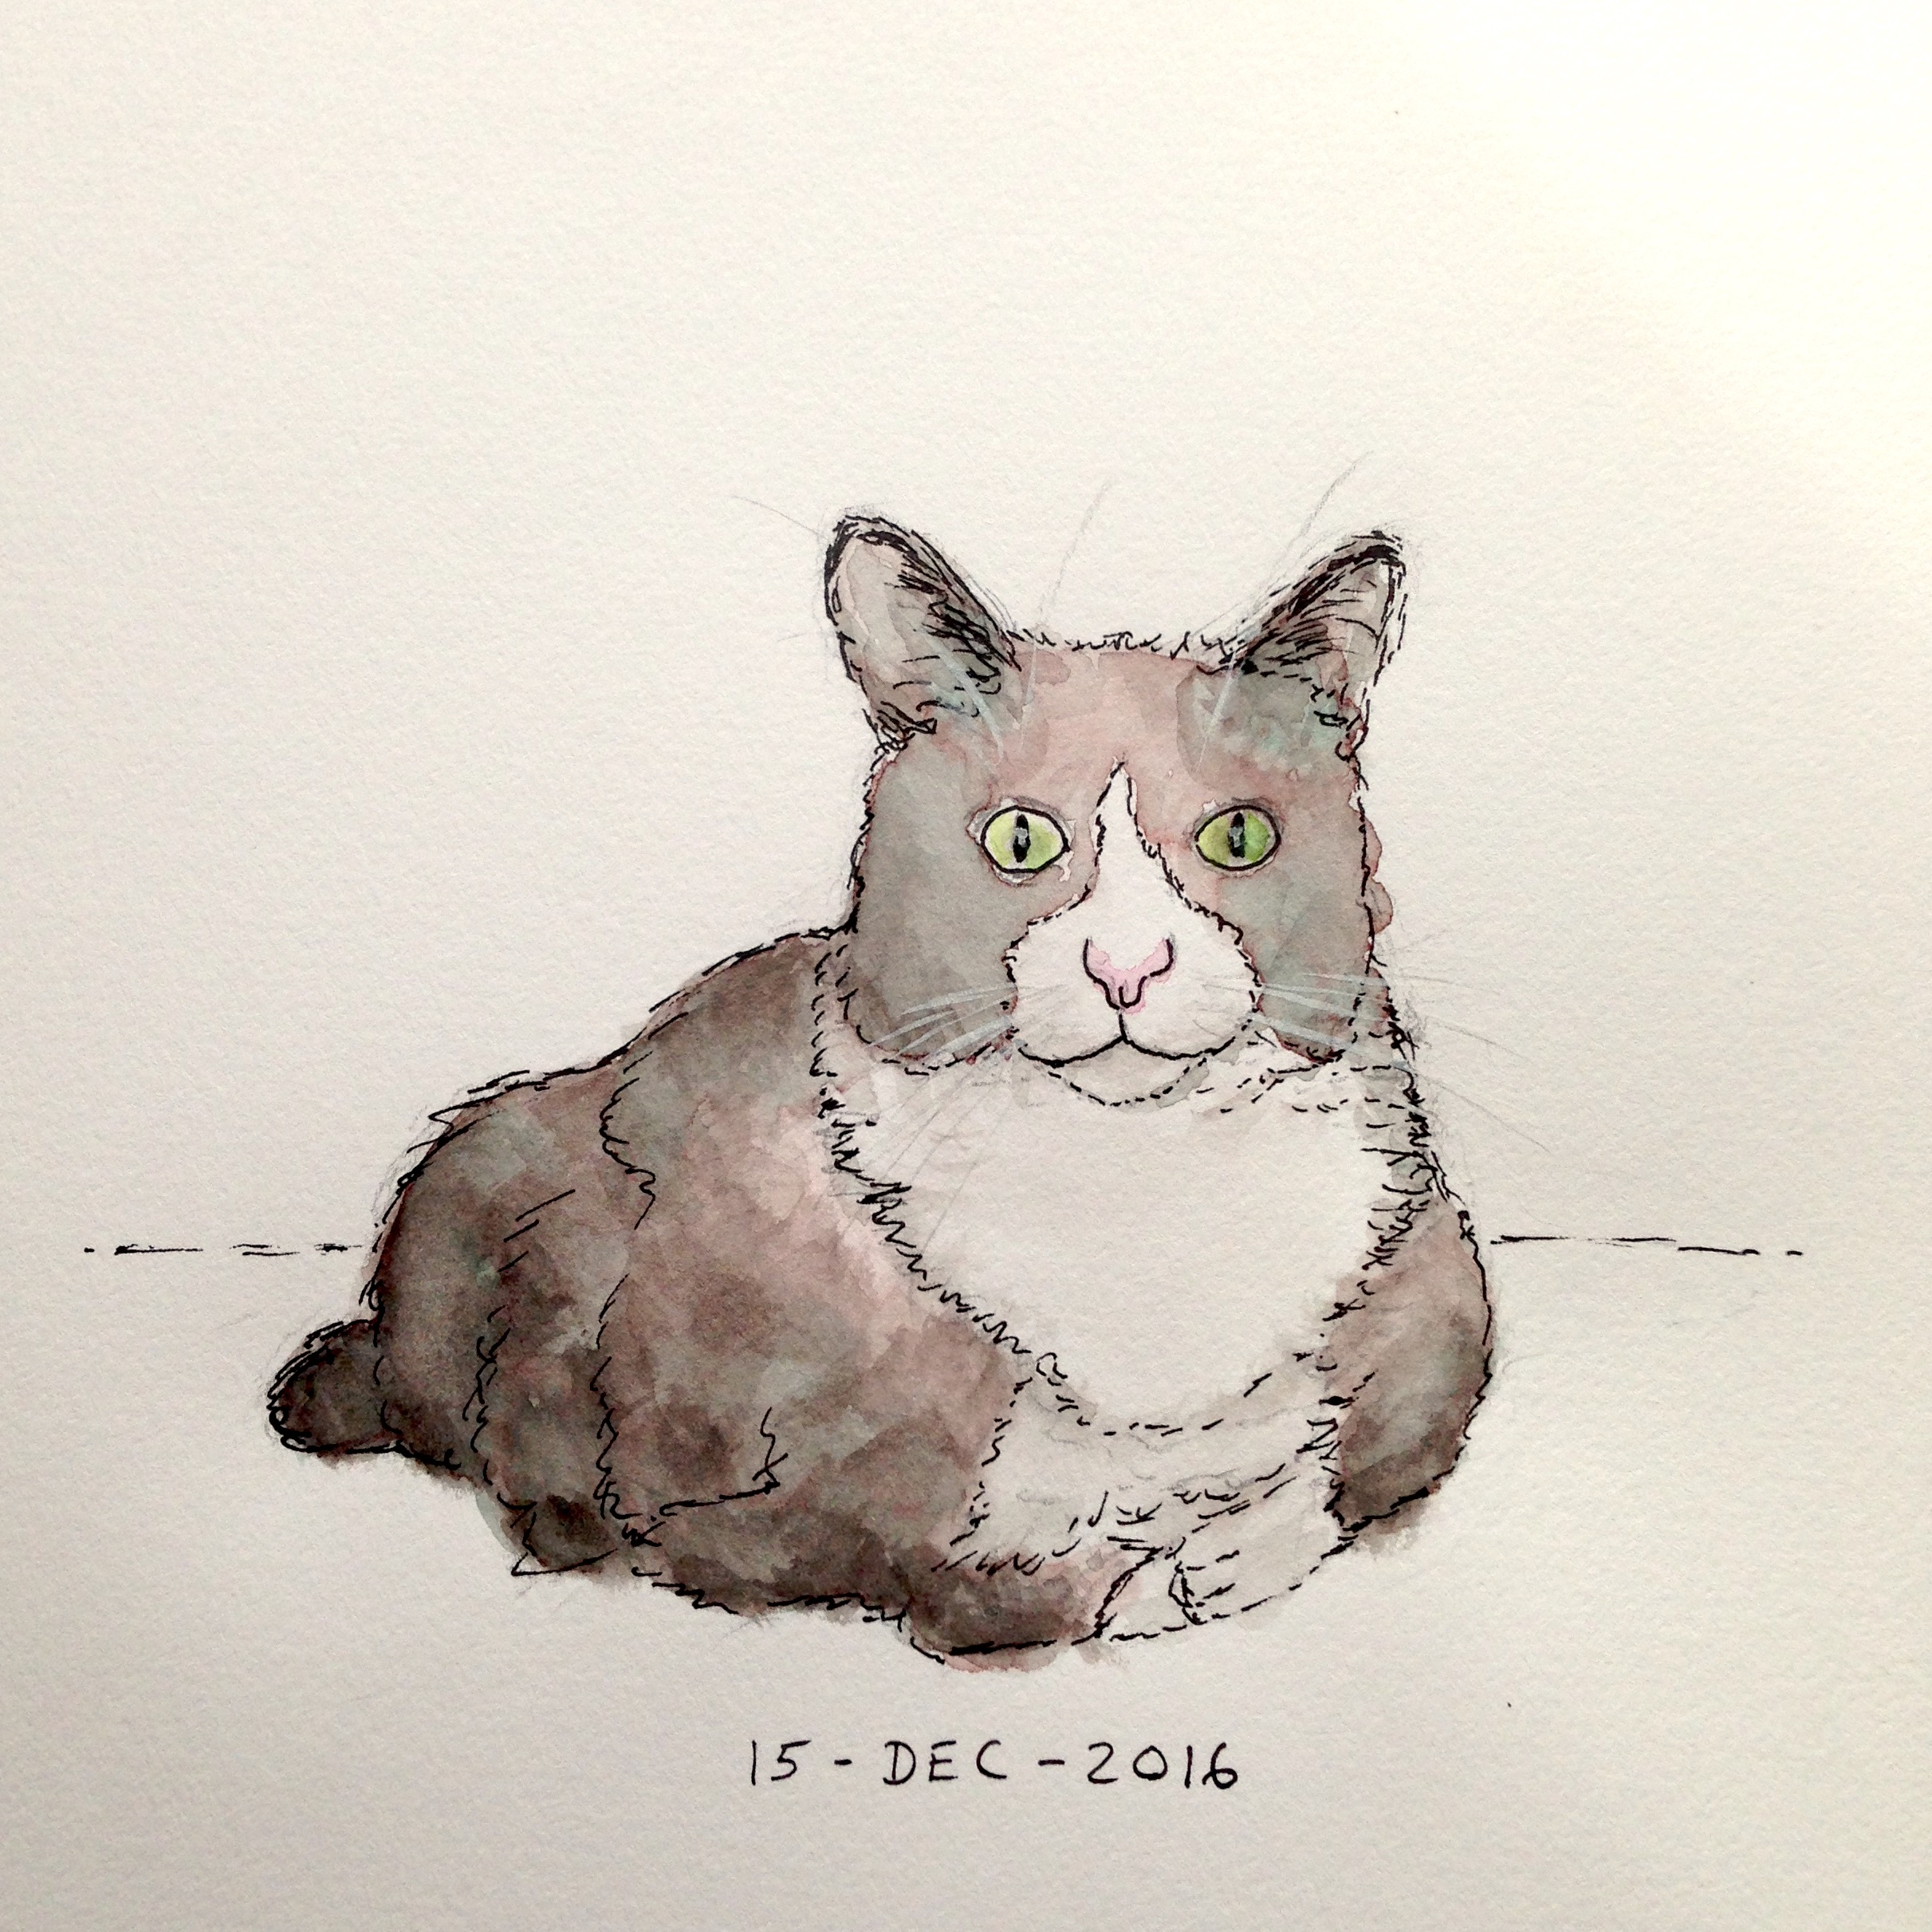 Pen and watercolor drawing of tuxedo cat, Kordell